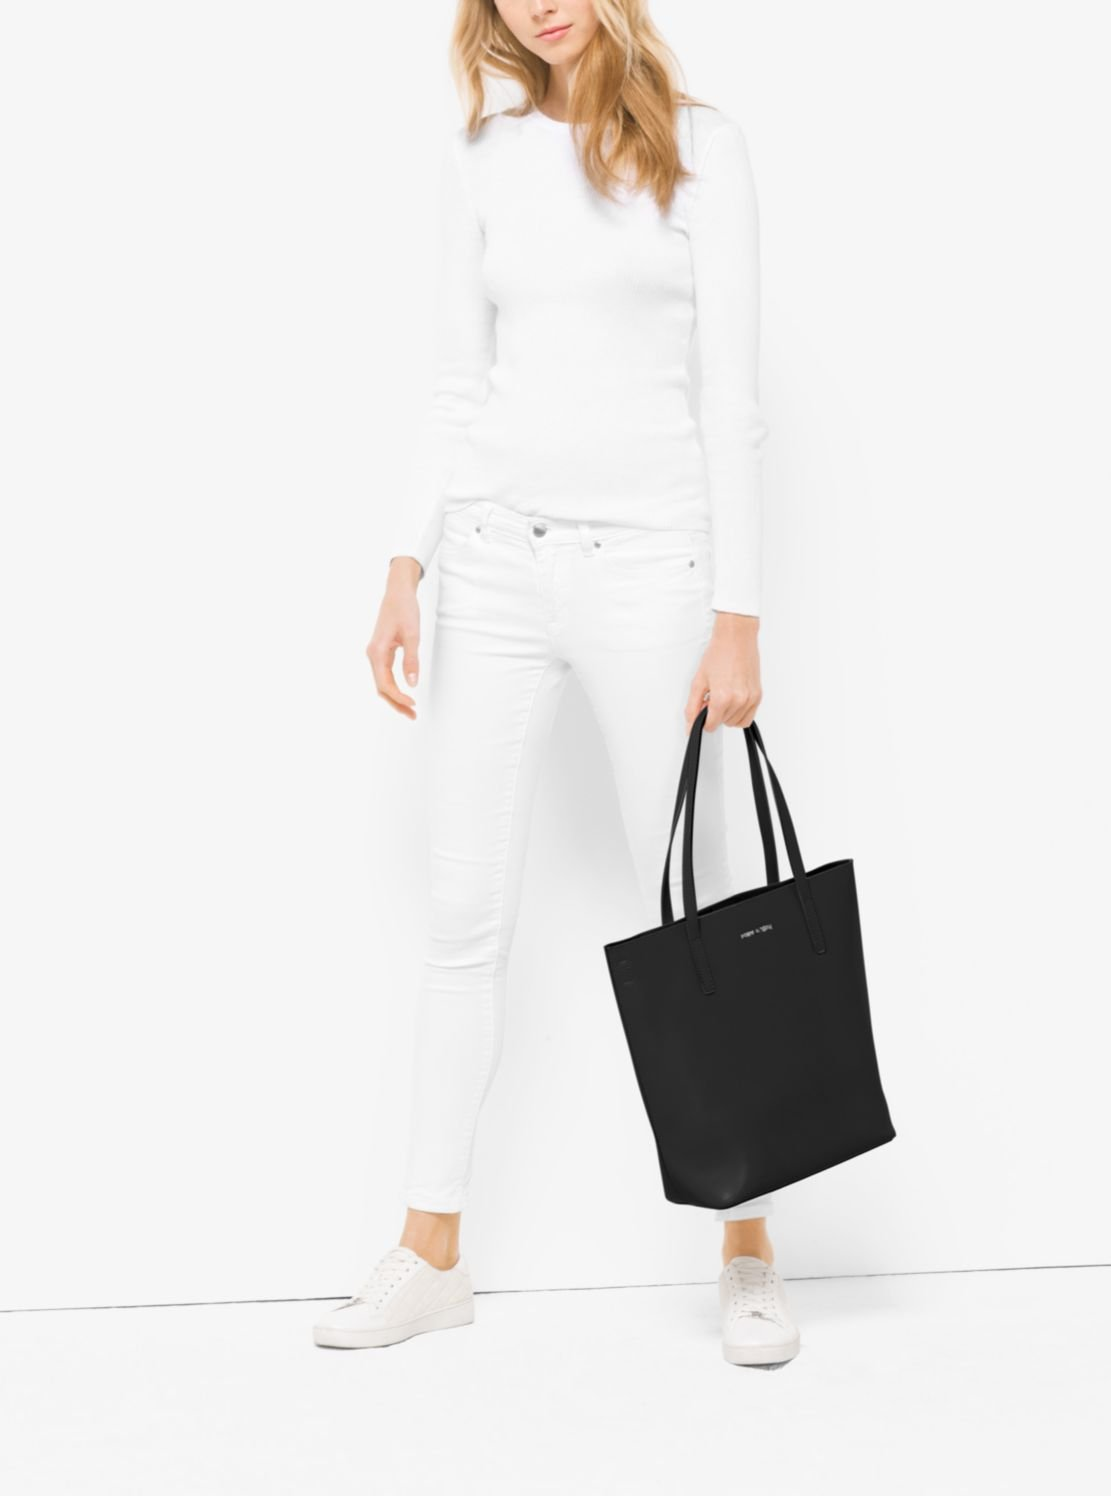 NEW AUTHENTIC MICHAEL KORS LARGE EMRY LEATHER TOTE BUSINESS BAG (Black) by Michael Kors (Image #3)